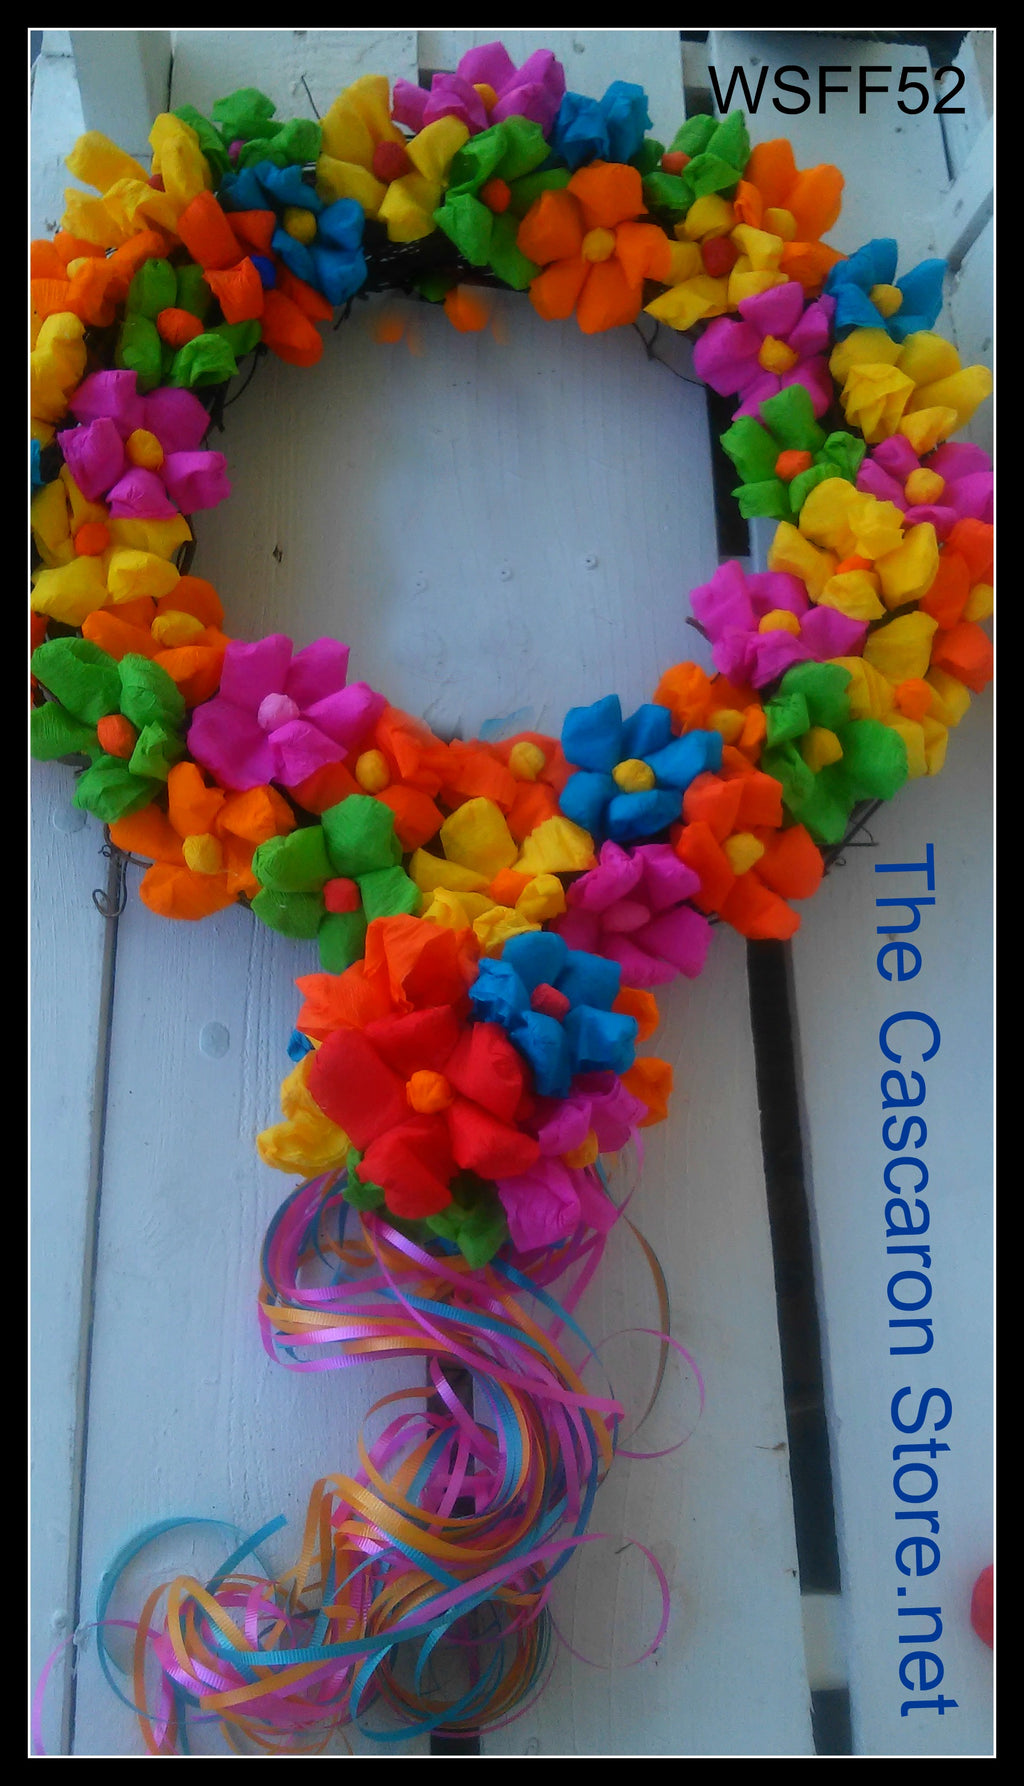 Flowers Wreath Flowers Wreath - Fiesta Arts Designs